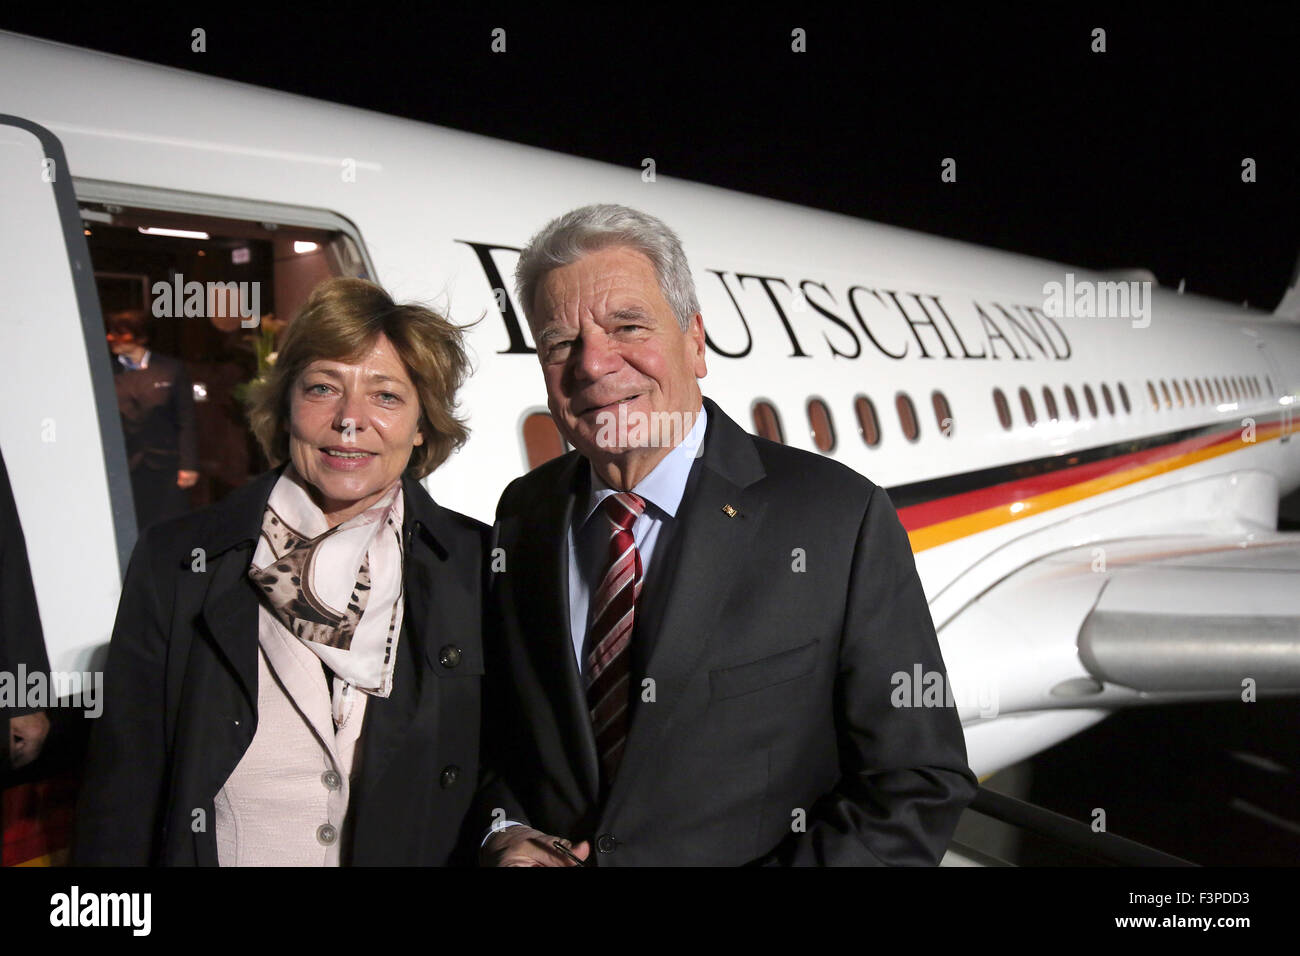 German President Joachim Gauck and his partner Daniela Schadt ready to depart for South Korea and Mongolia at Berlin - Stock Image